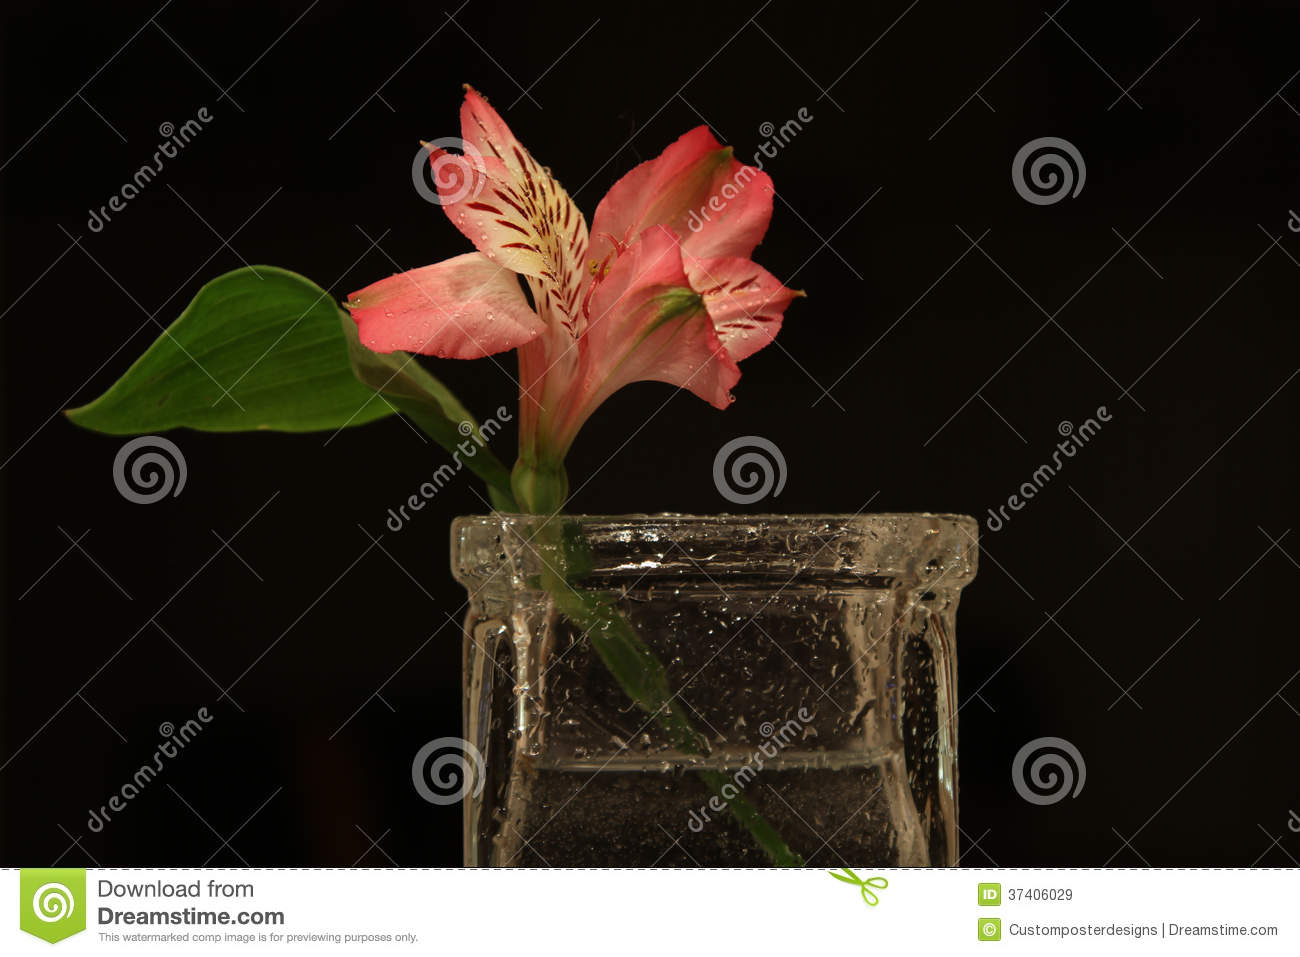 A salmon colored flower in a vase.